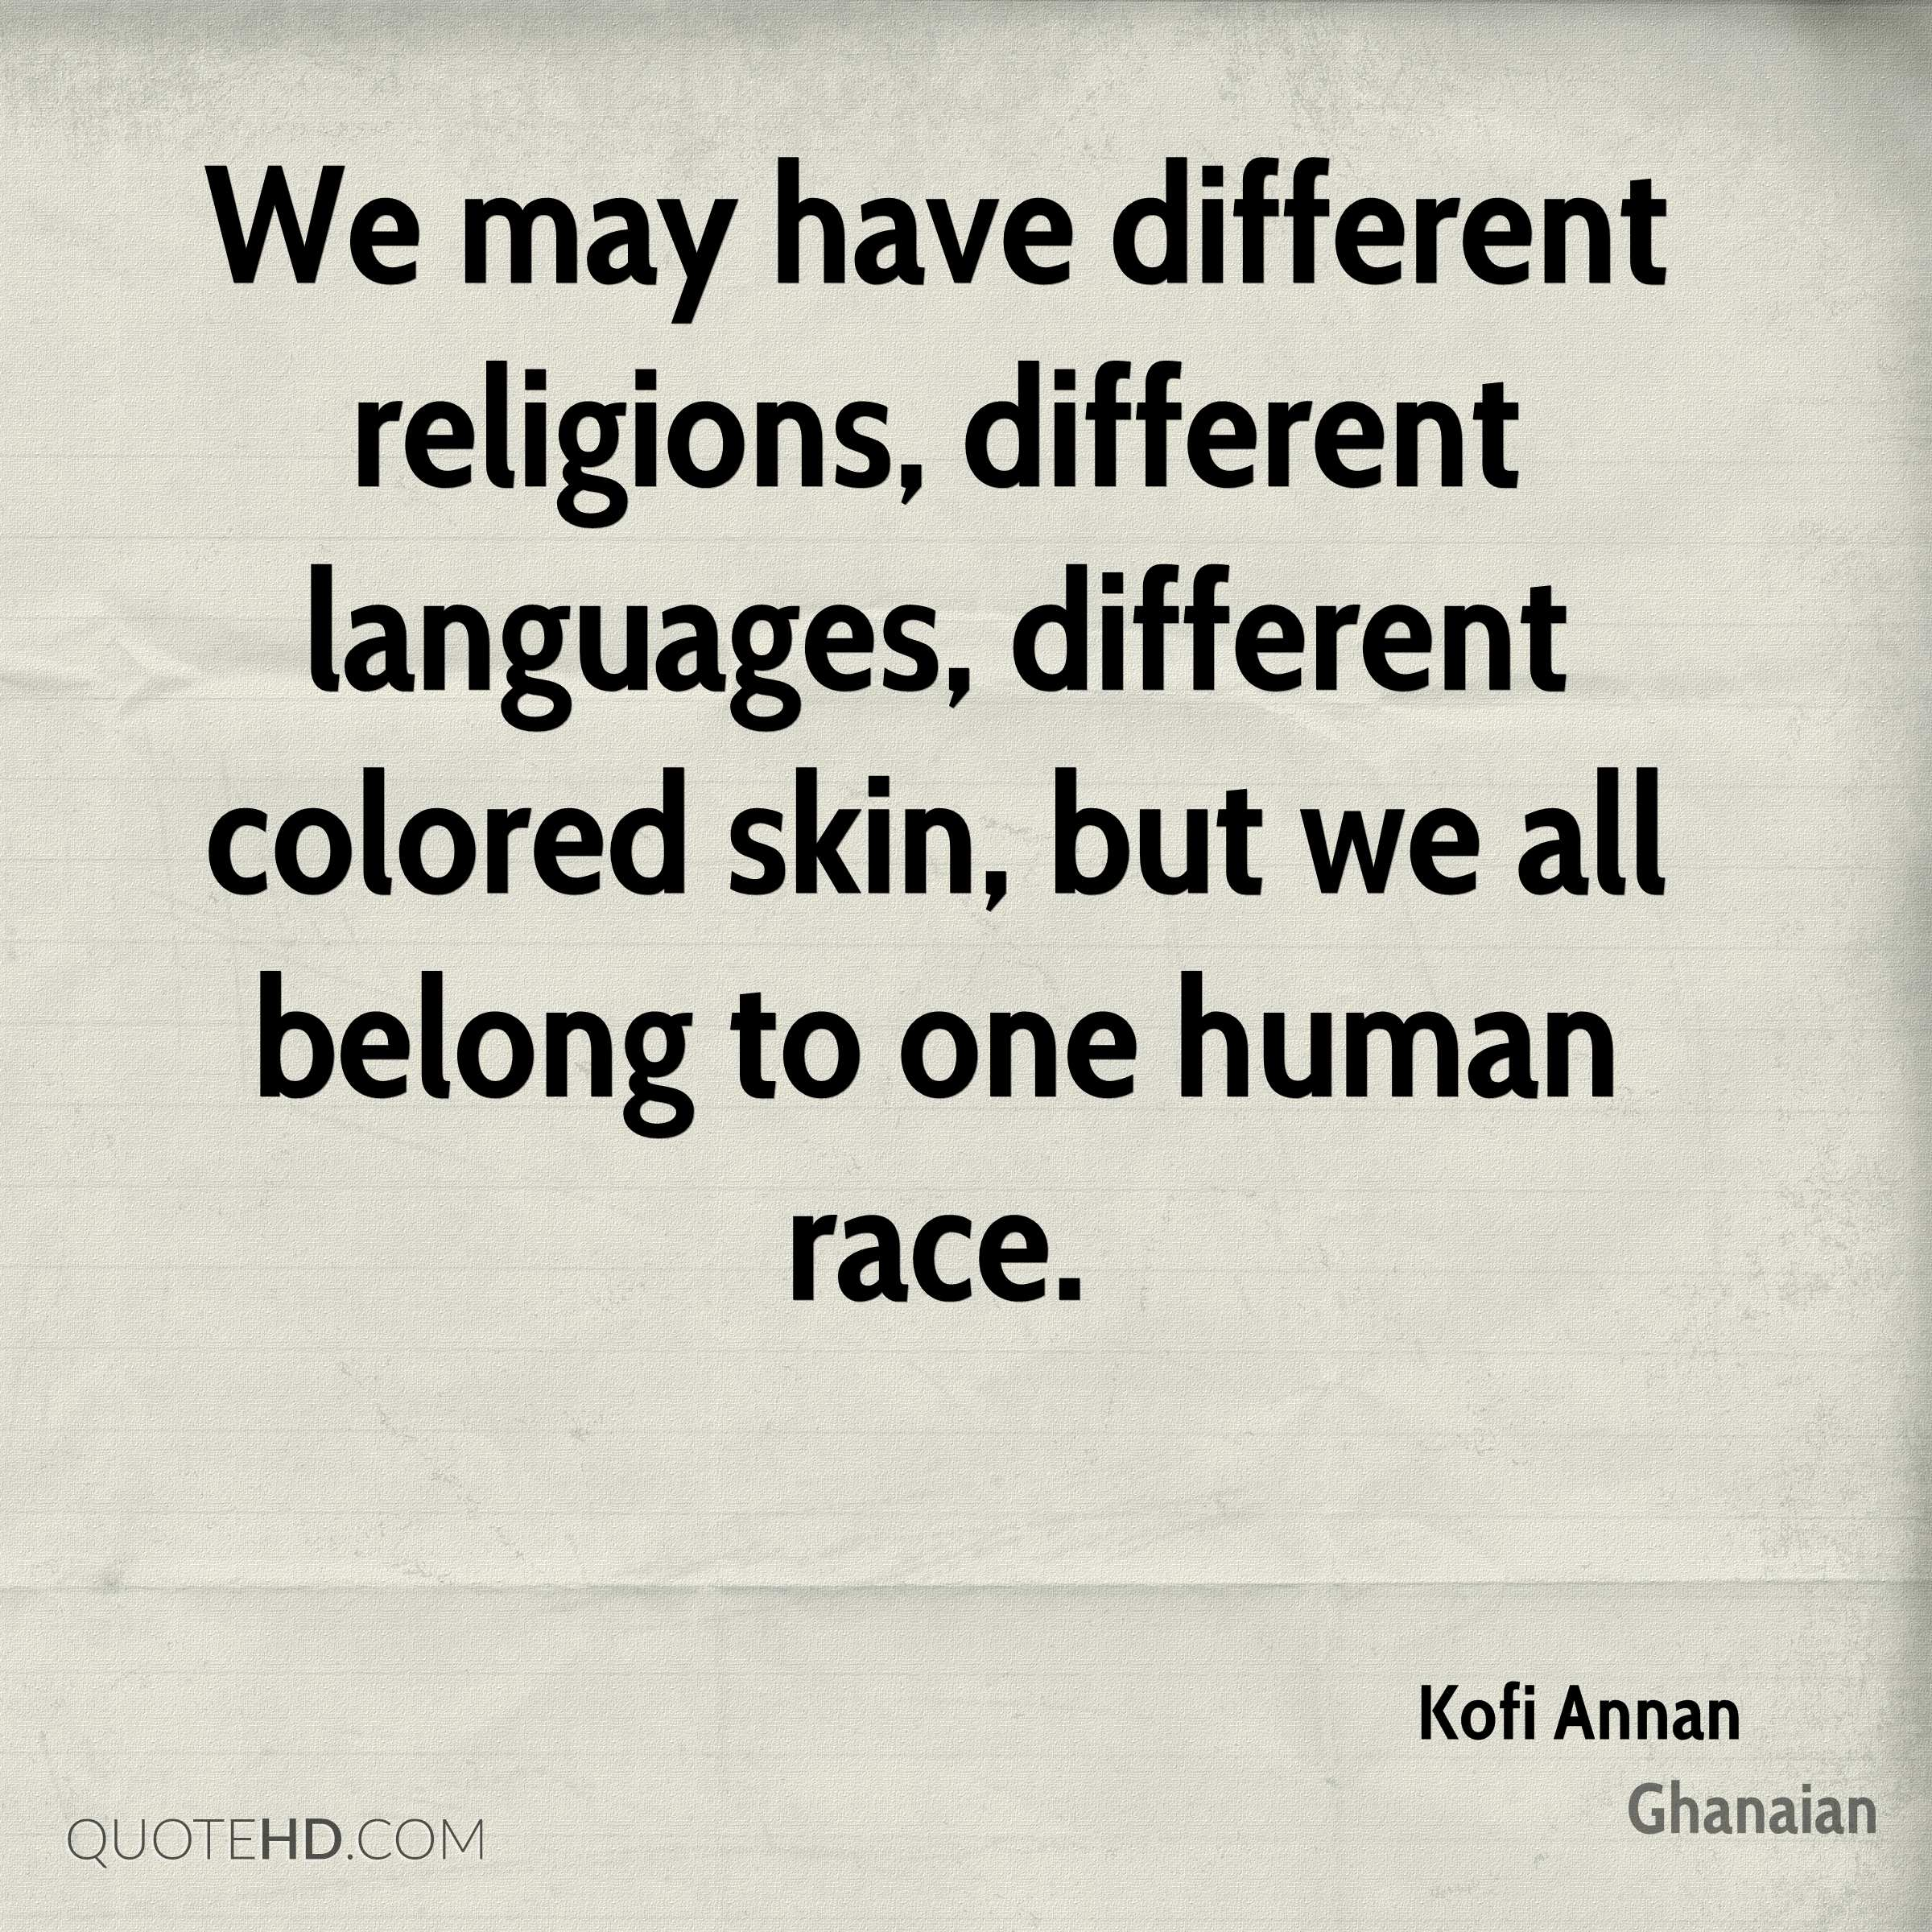 We may have different religions, different languages, different colored skin, but we all belong to one human race.